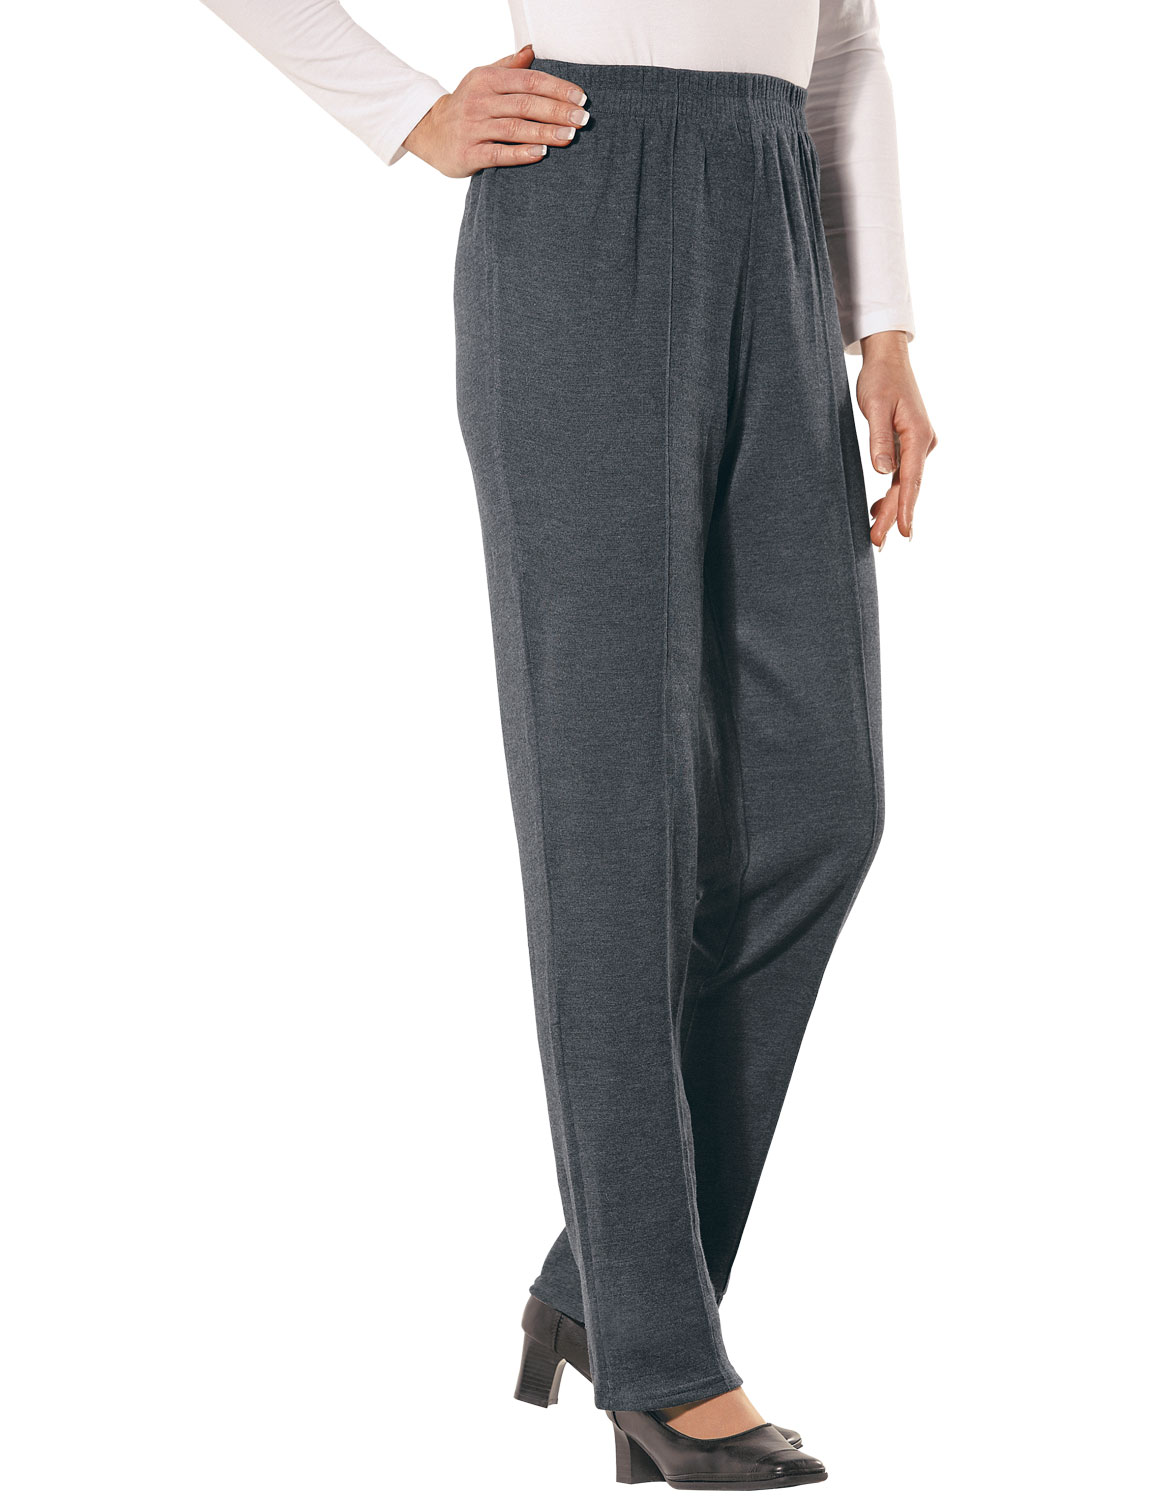 Dana Buchman pants at Kohl's - Shop our full selection of women's pants, including these Dana Buchman Straight-Leg Pull-On Pants, at pc-ios.tk Sponsored Links Outside companies pay to advertise via these links when specific phrases and words are searched.